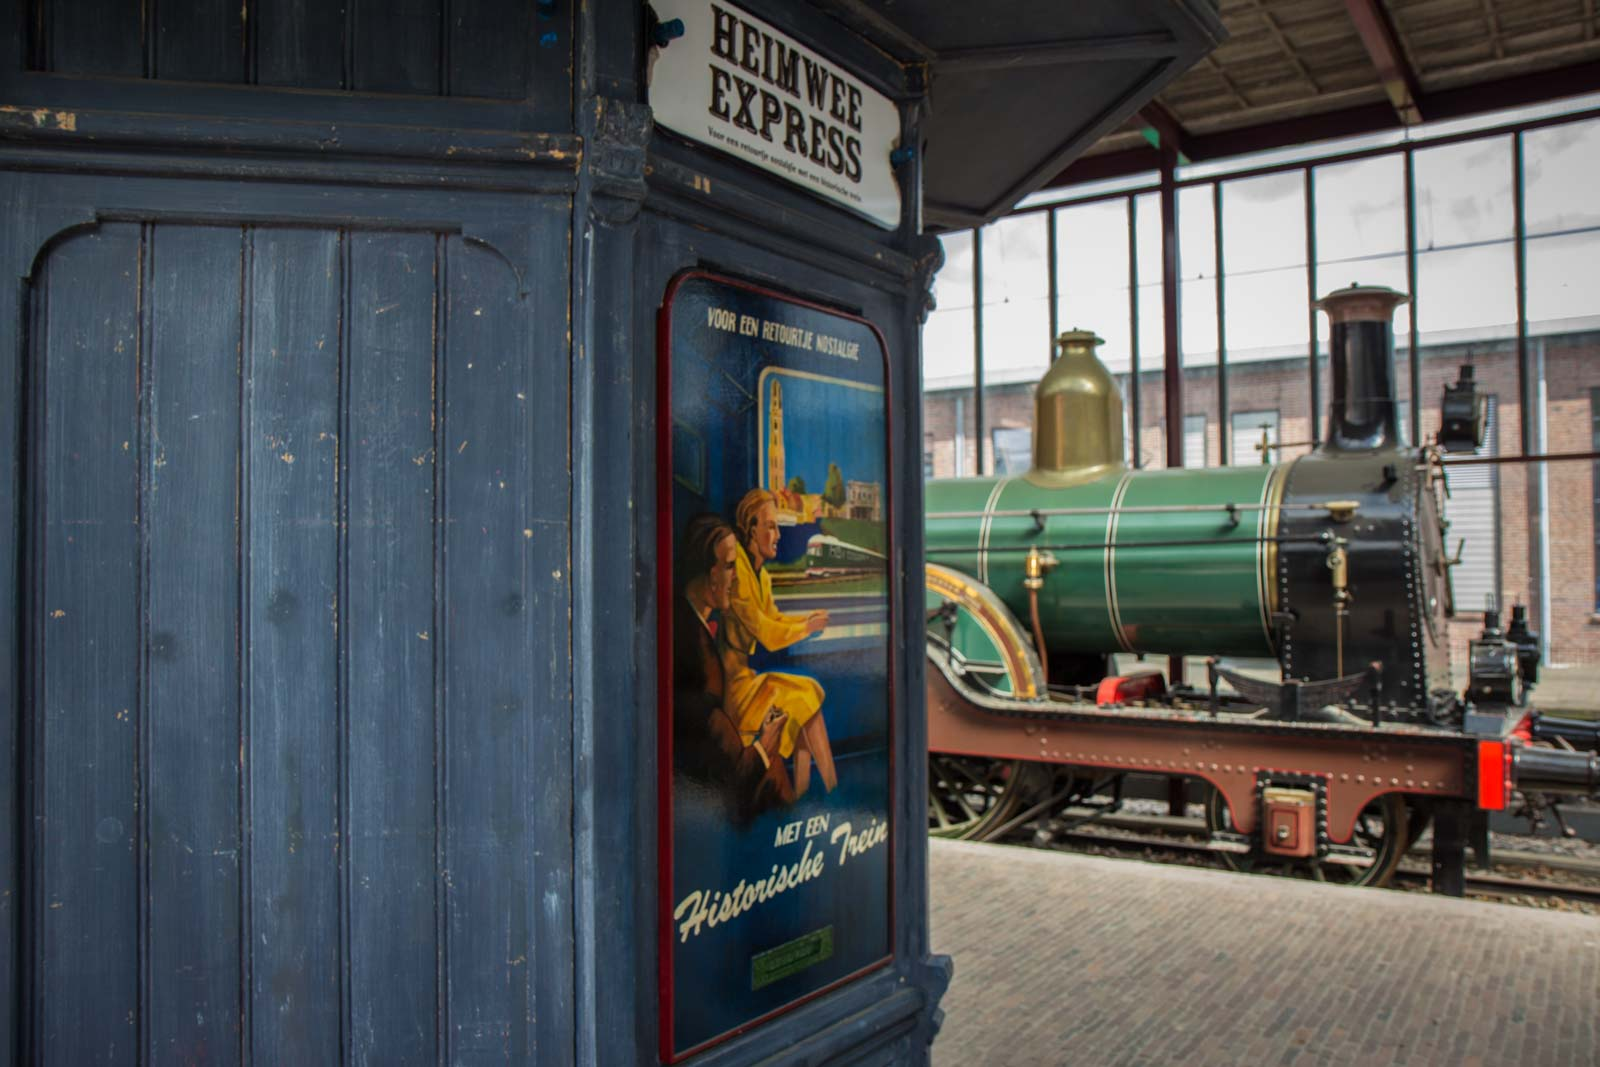 Railway Museum, Utrecht, The Netherlands